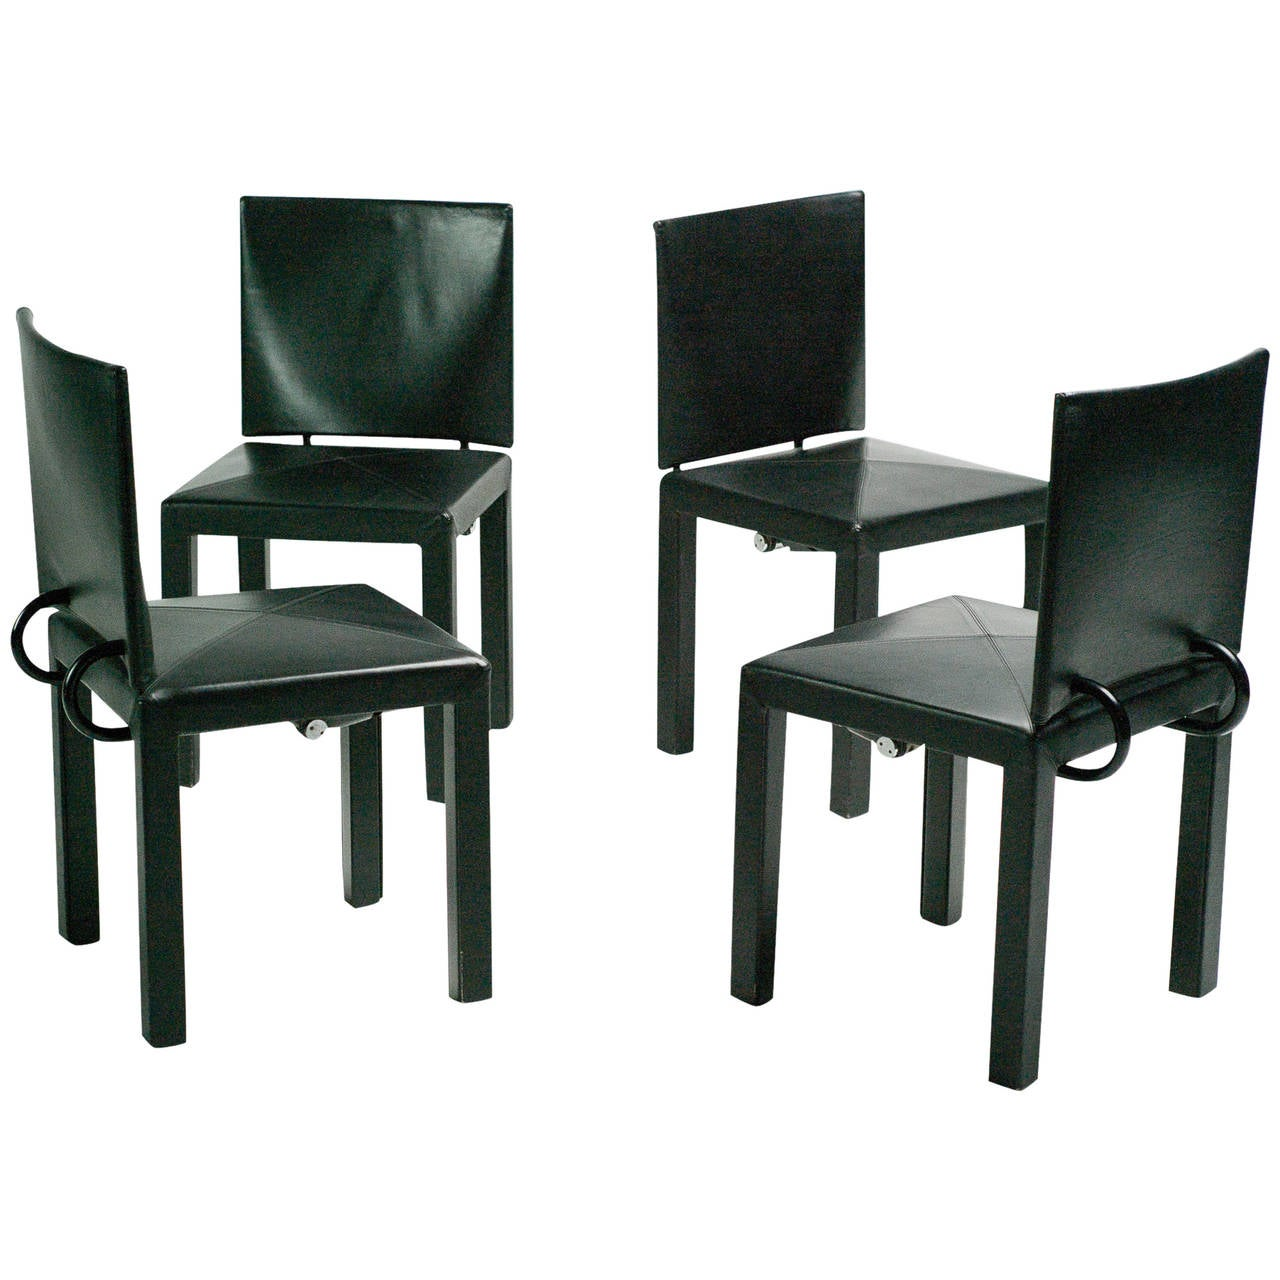 Set of four arcadia chairs by paolo piva for b b italia at for B b italia dining room chairs